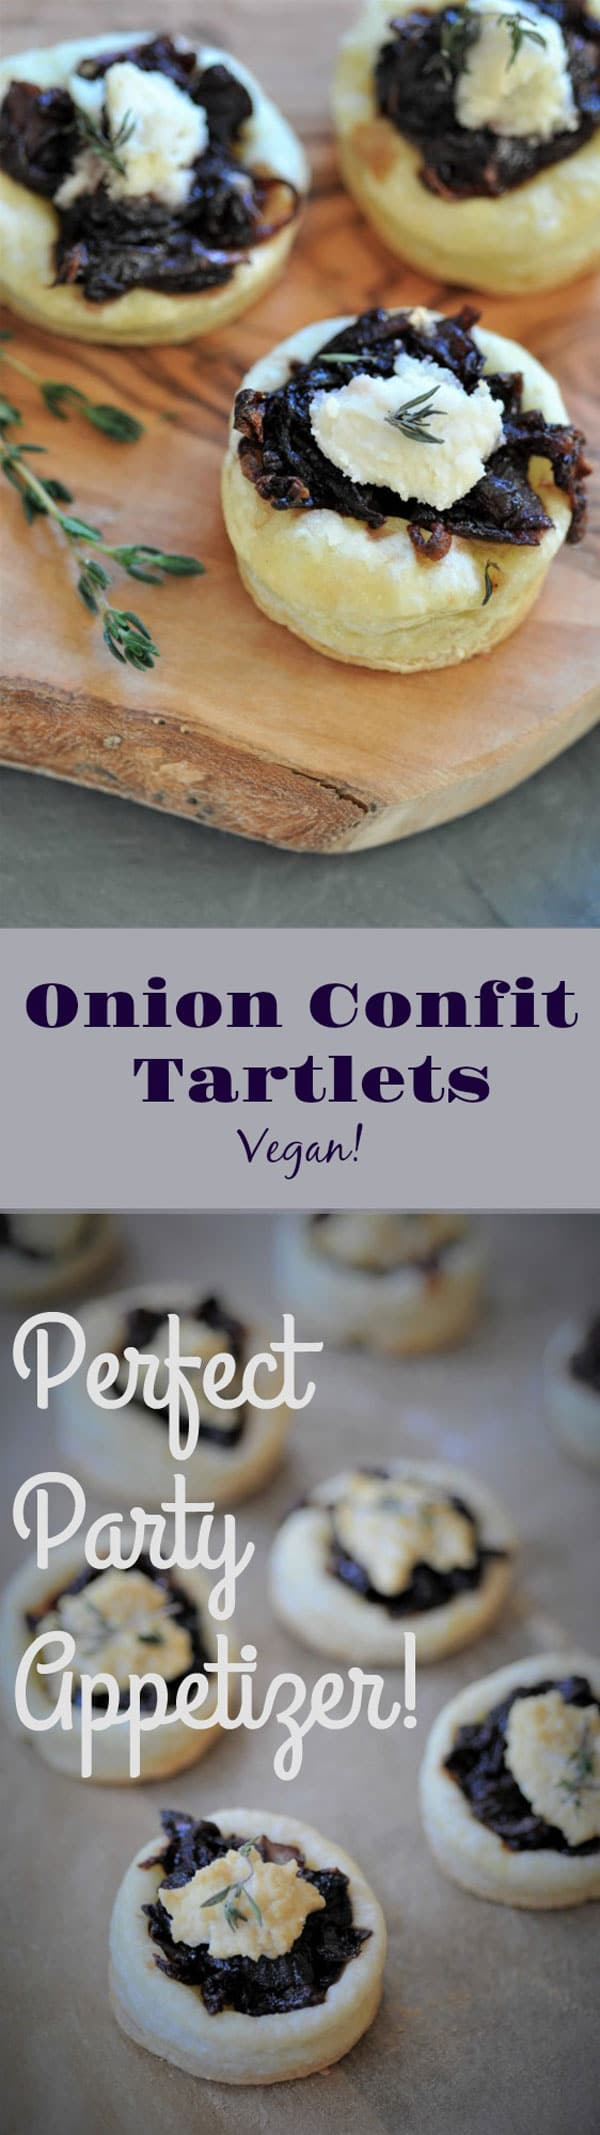 Onion Confit Tartlets pin for Pinterest with one picture showing the tarts on a wood tray and one with the tarts on parchment.